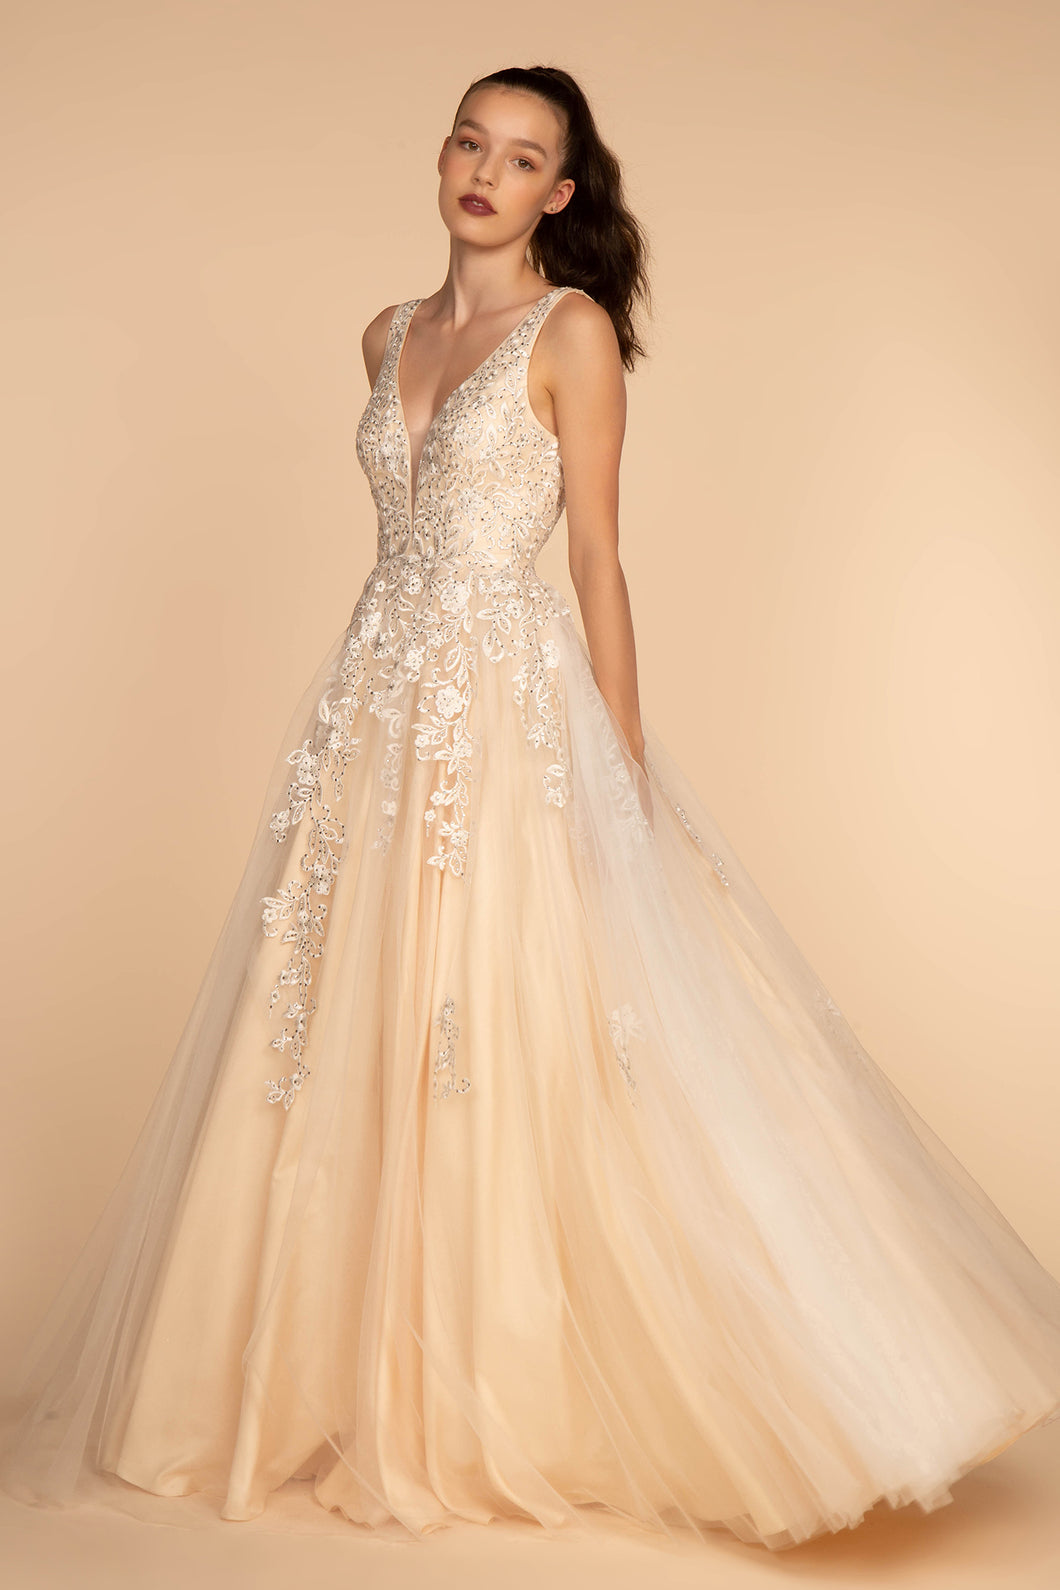 Audra Wedding Dress in Champagne Floral Lace Top with Tulle Ballgown Skirt G2529TNR  SAMPLE IN STORE